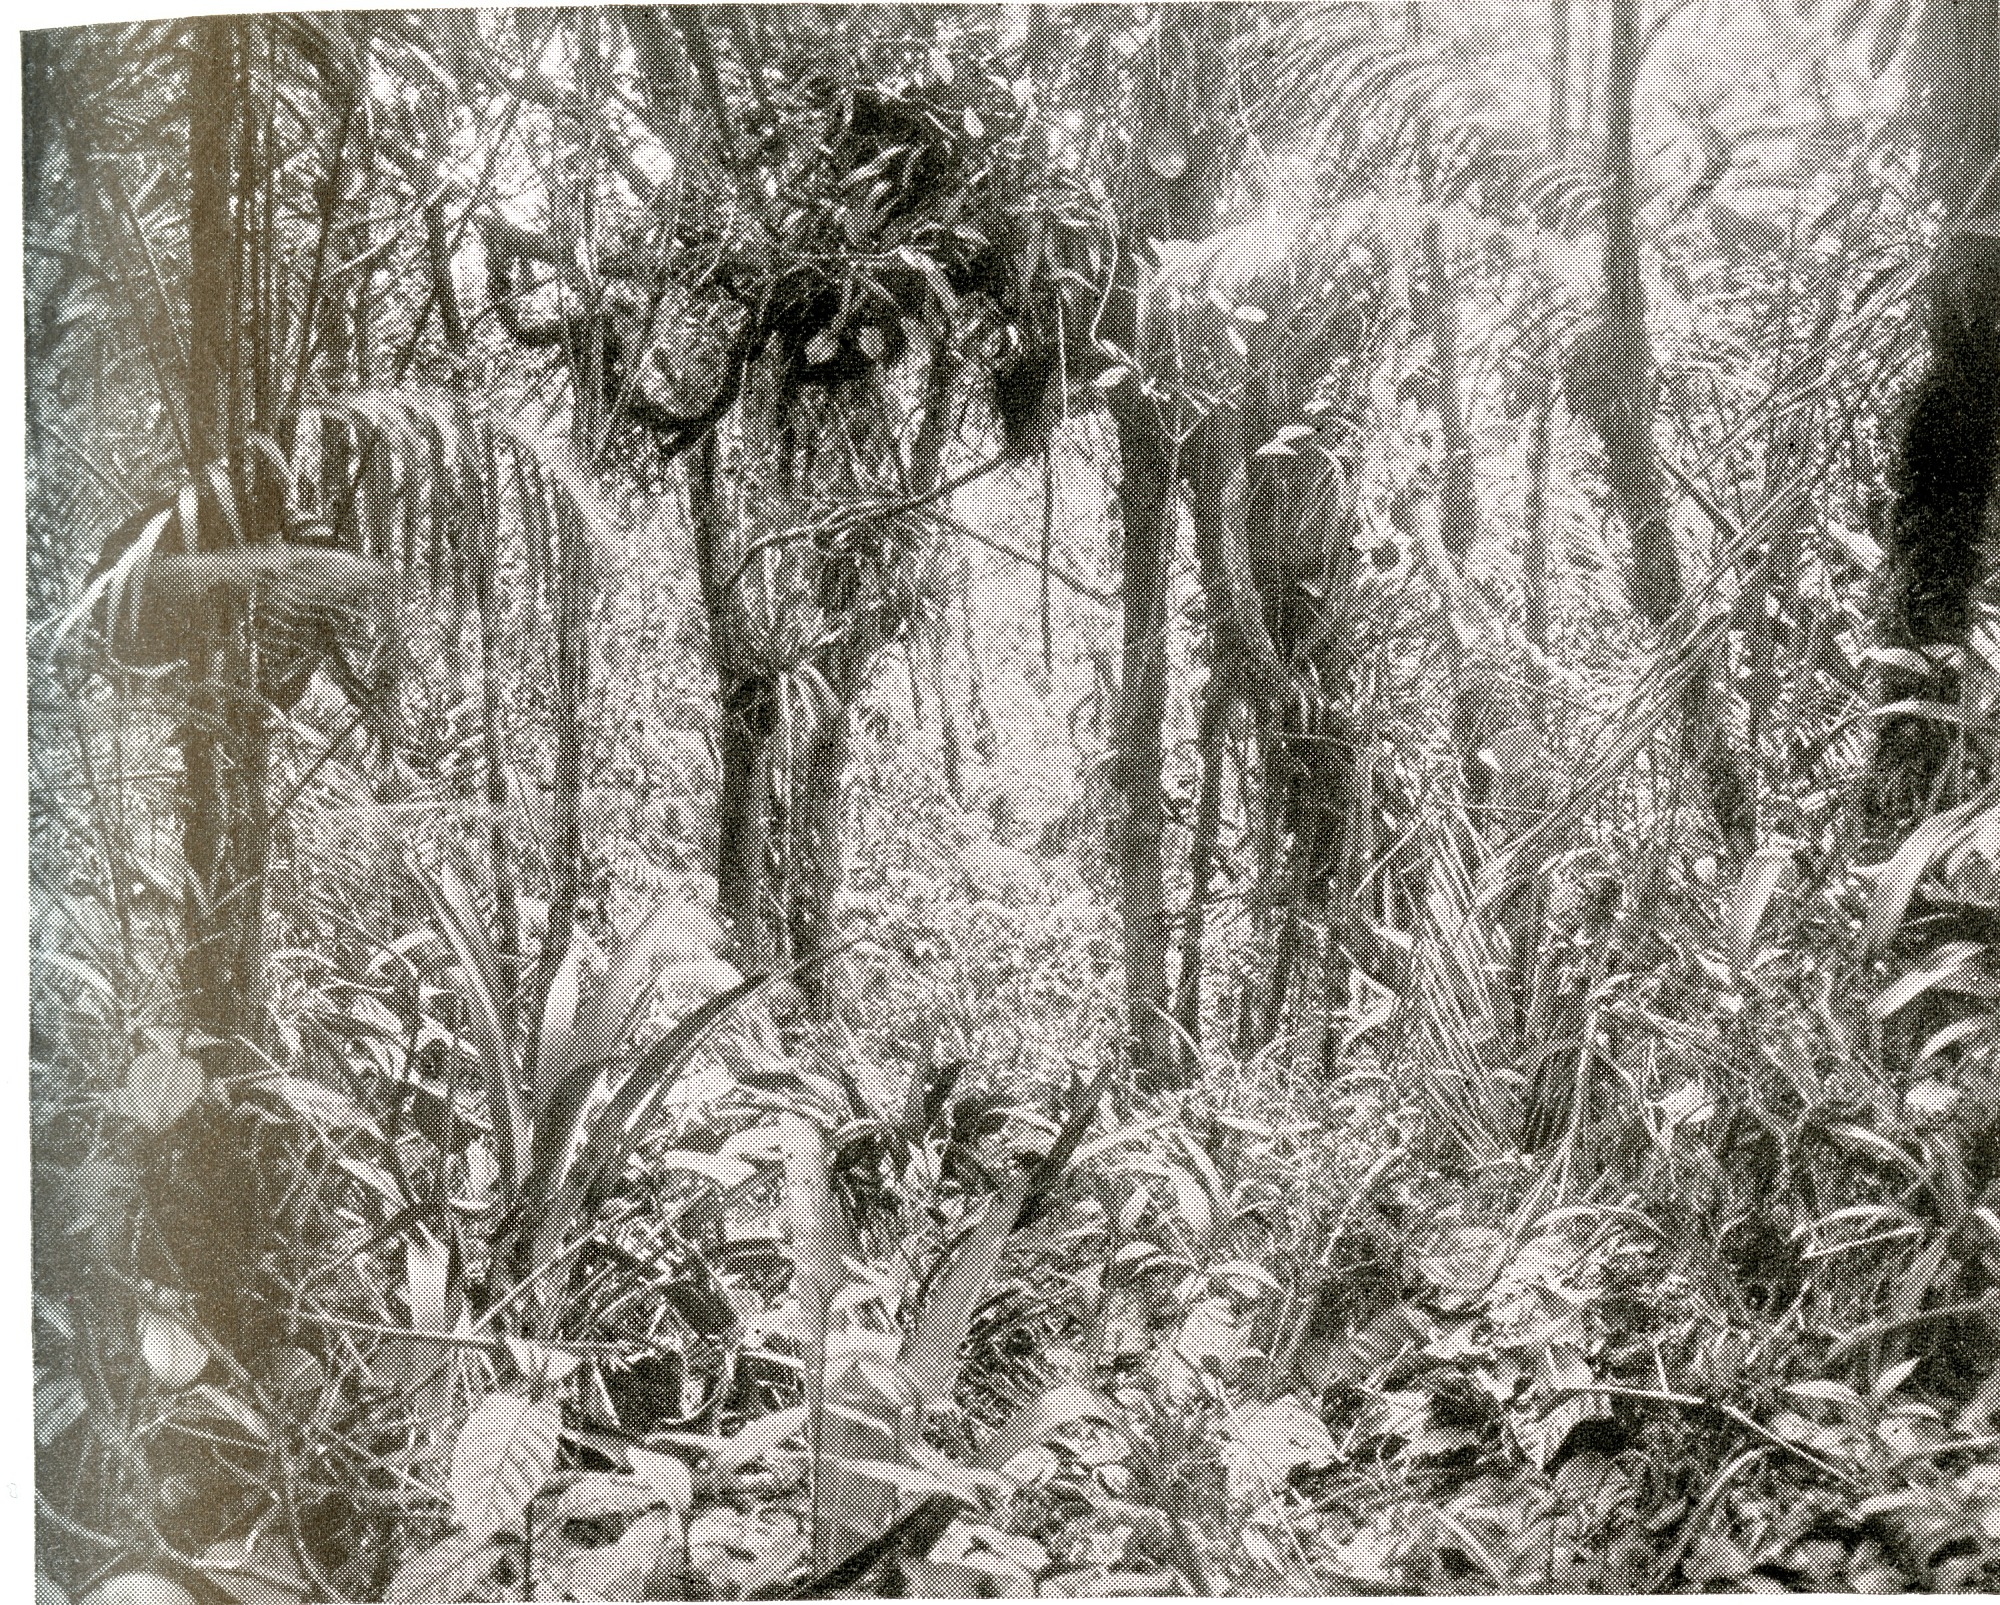 Tropical Thicket on Cerro Azul, near Canal Zone